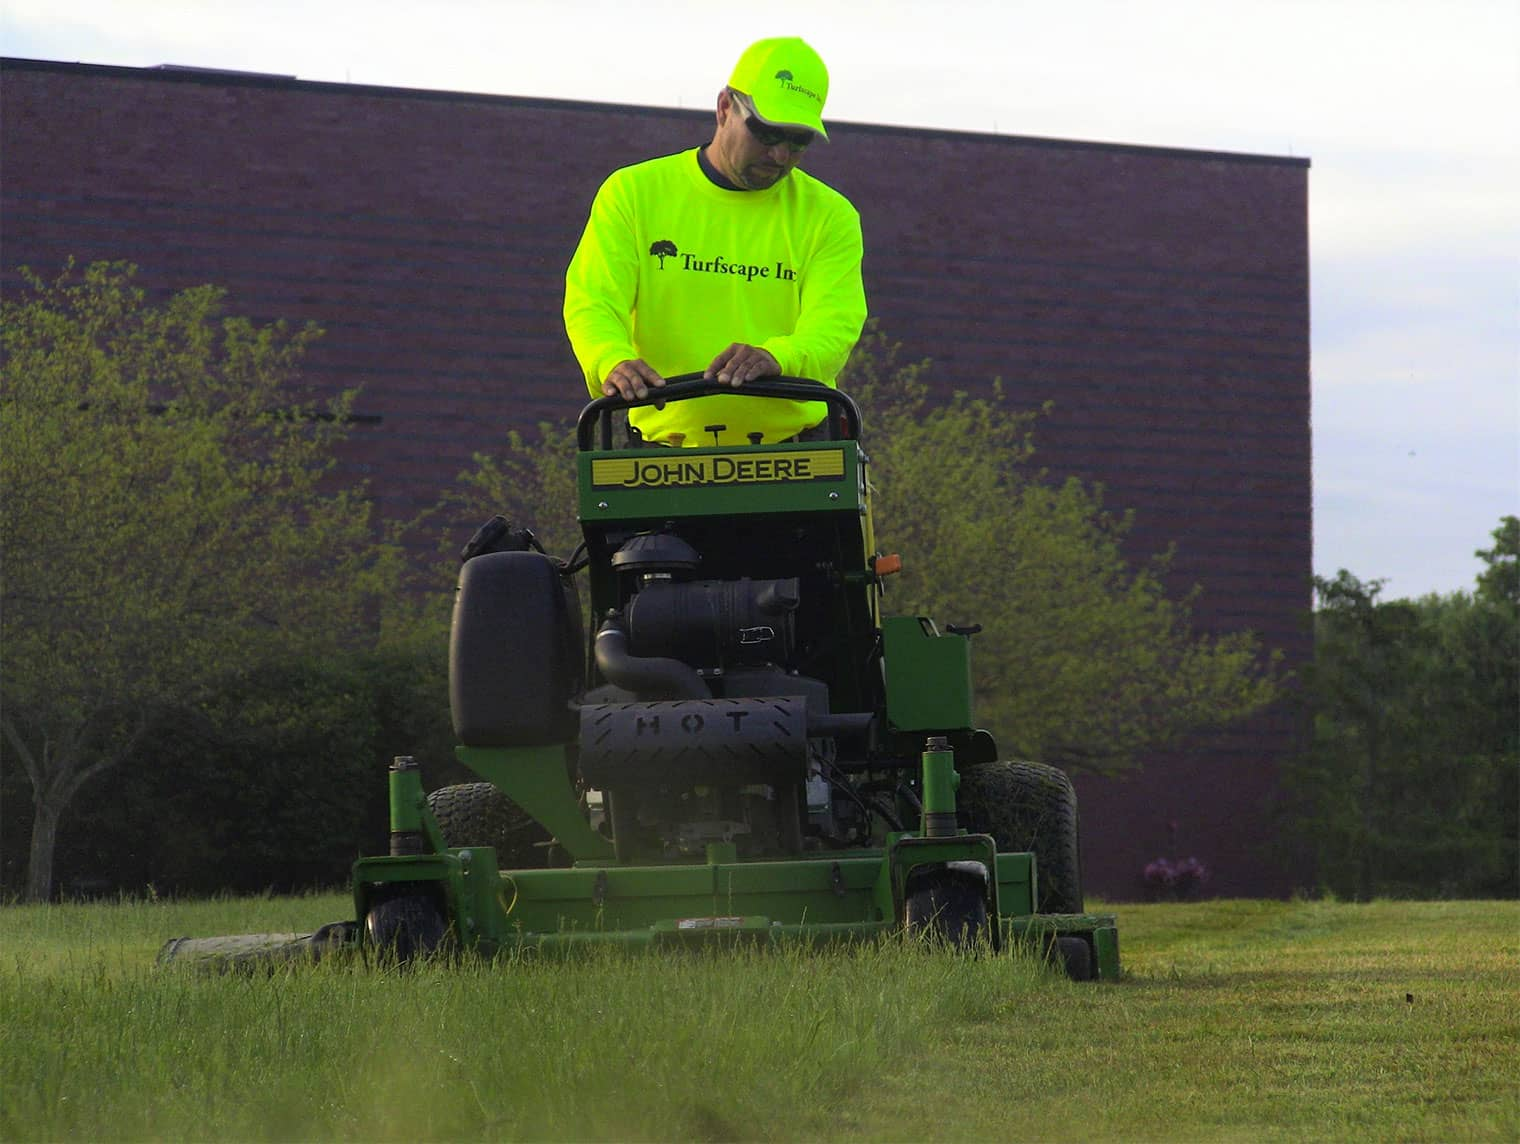 homeBanner-Mower.jpg